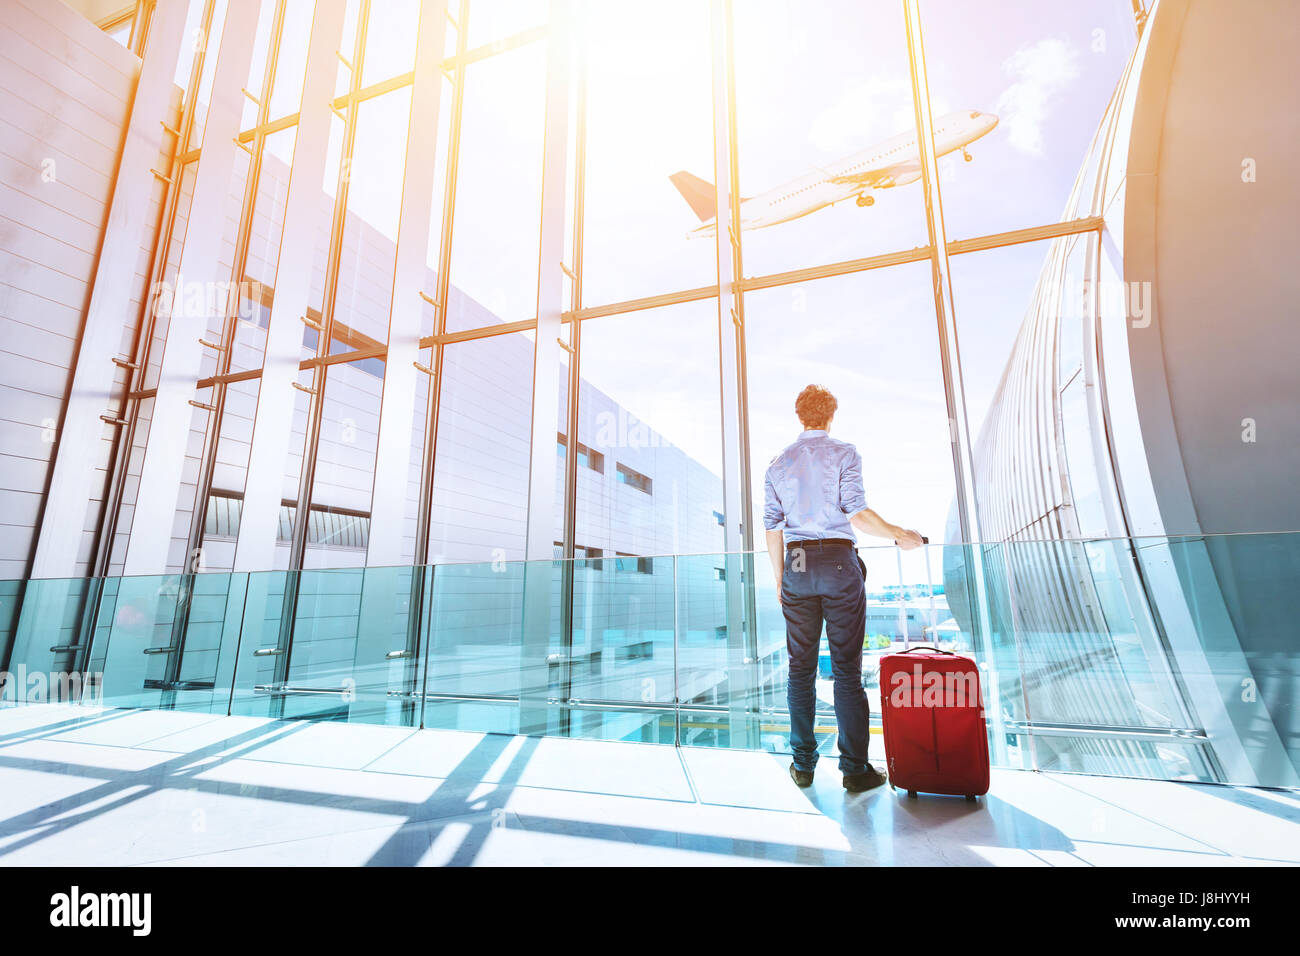 Businessman at airport terminal boarding gate looking at airplane flying through the window - Stock Image